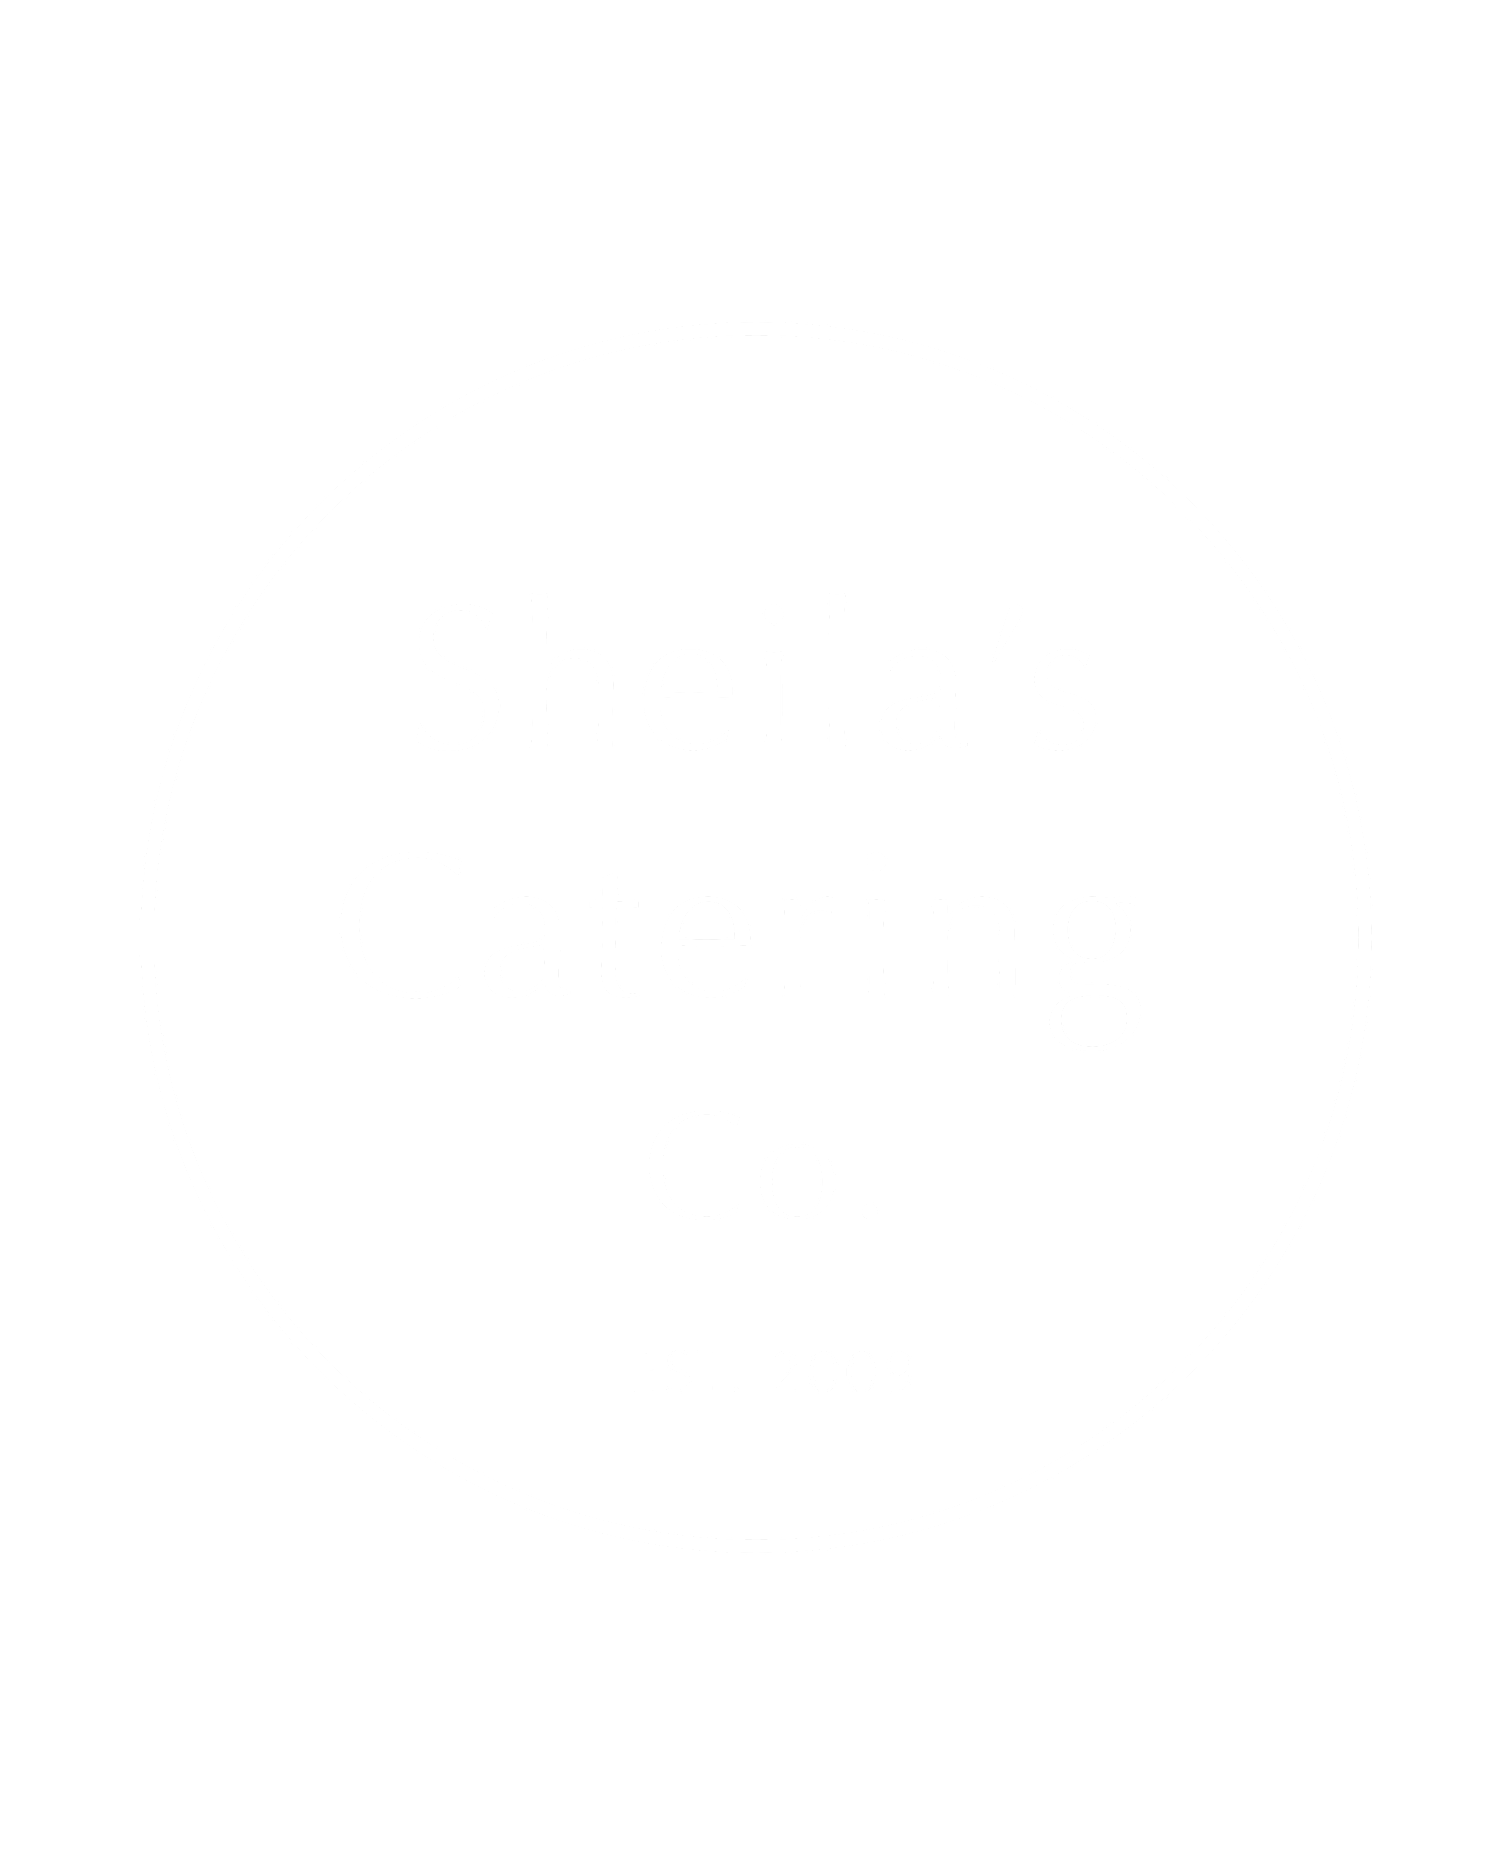 SHEILA'S CATERING